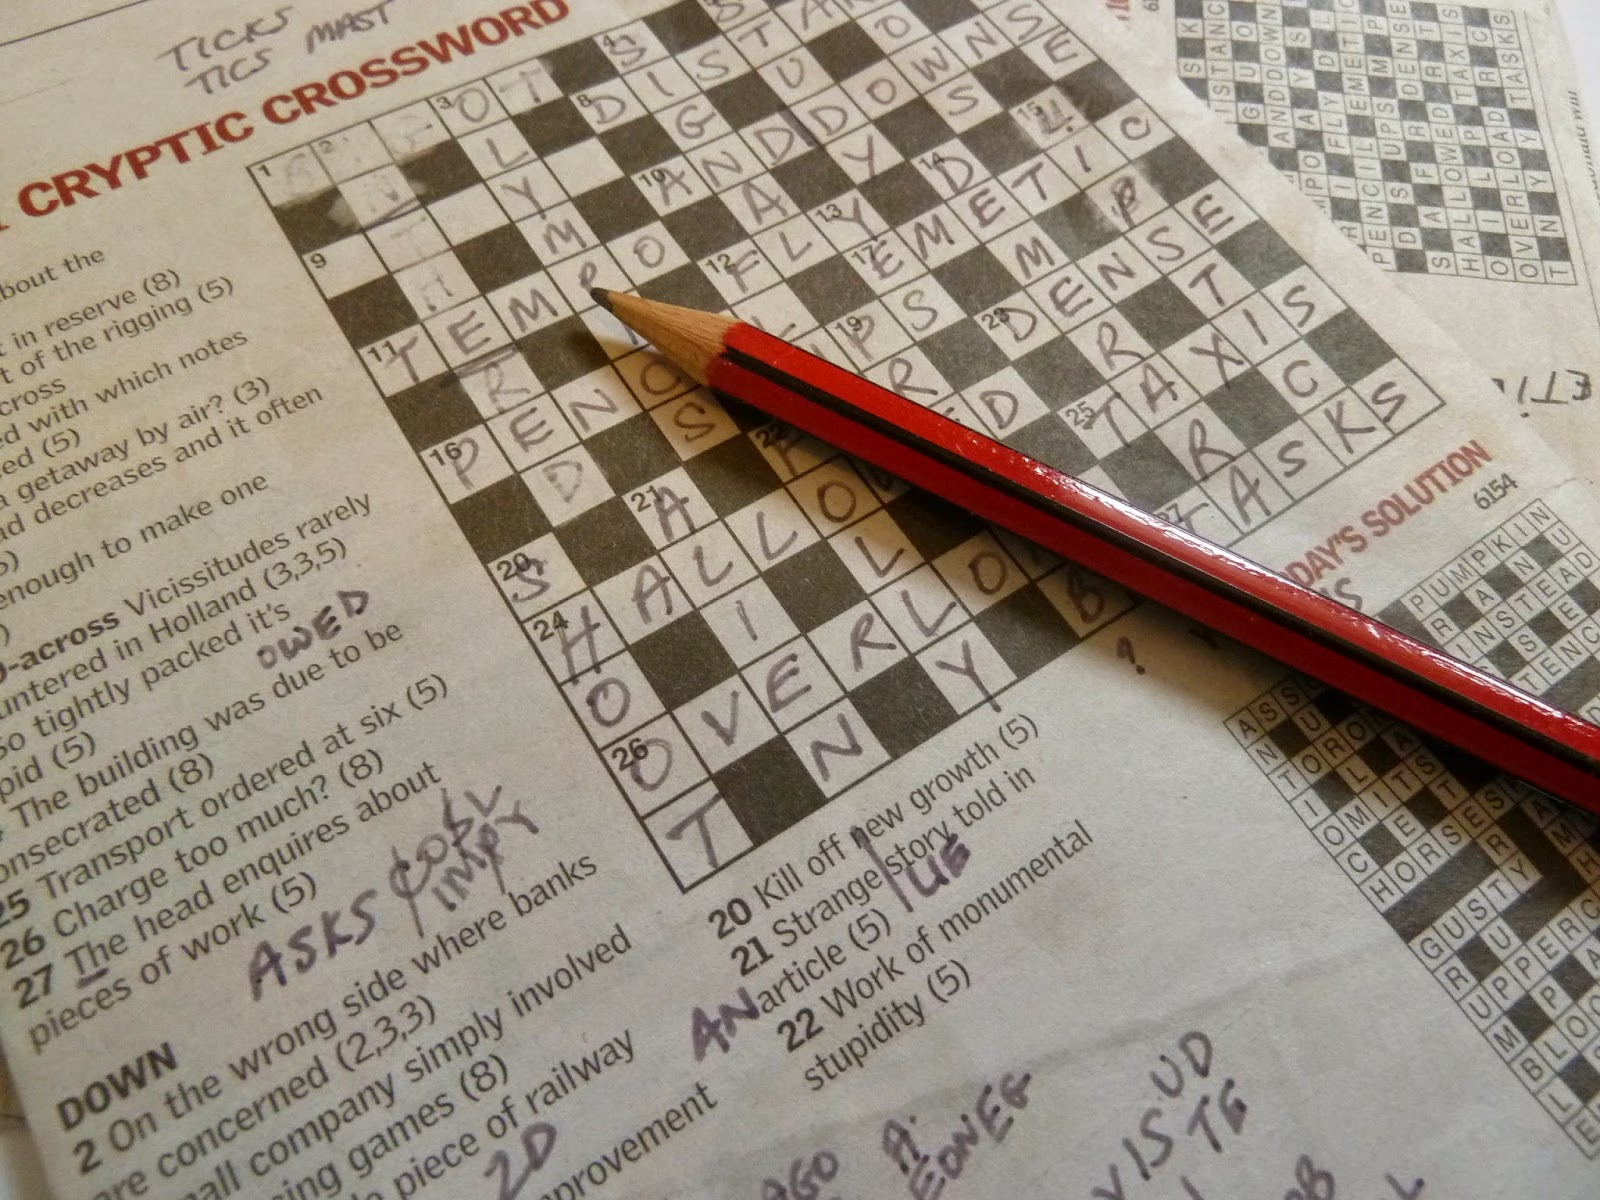 Cryptic crossword from a newspaper